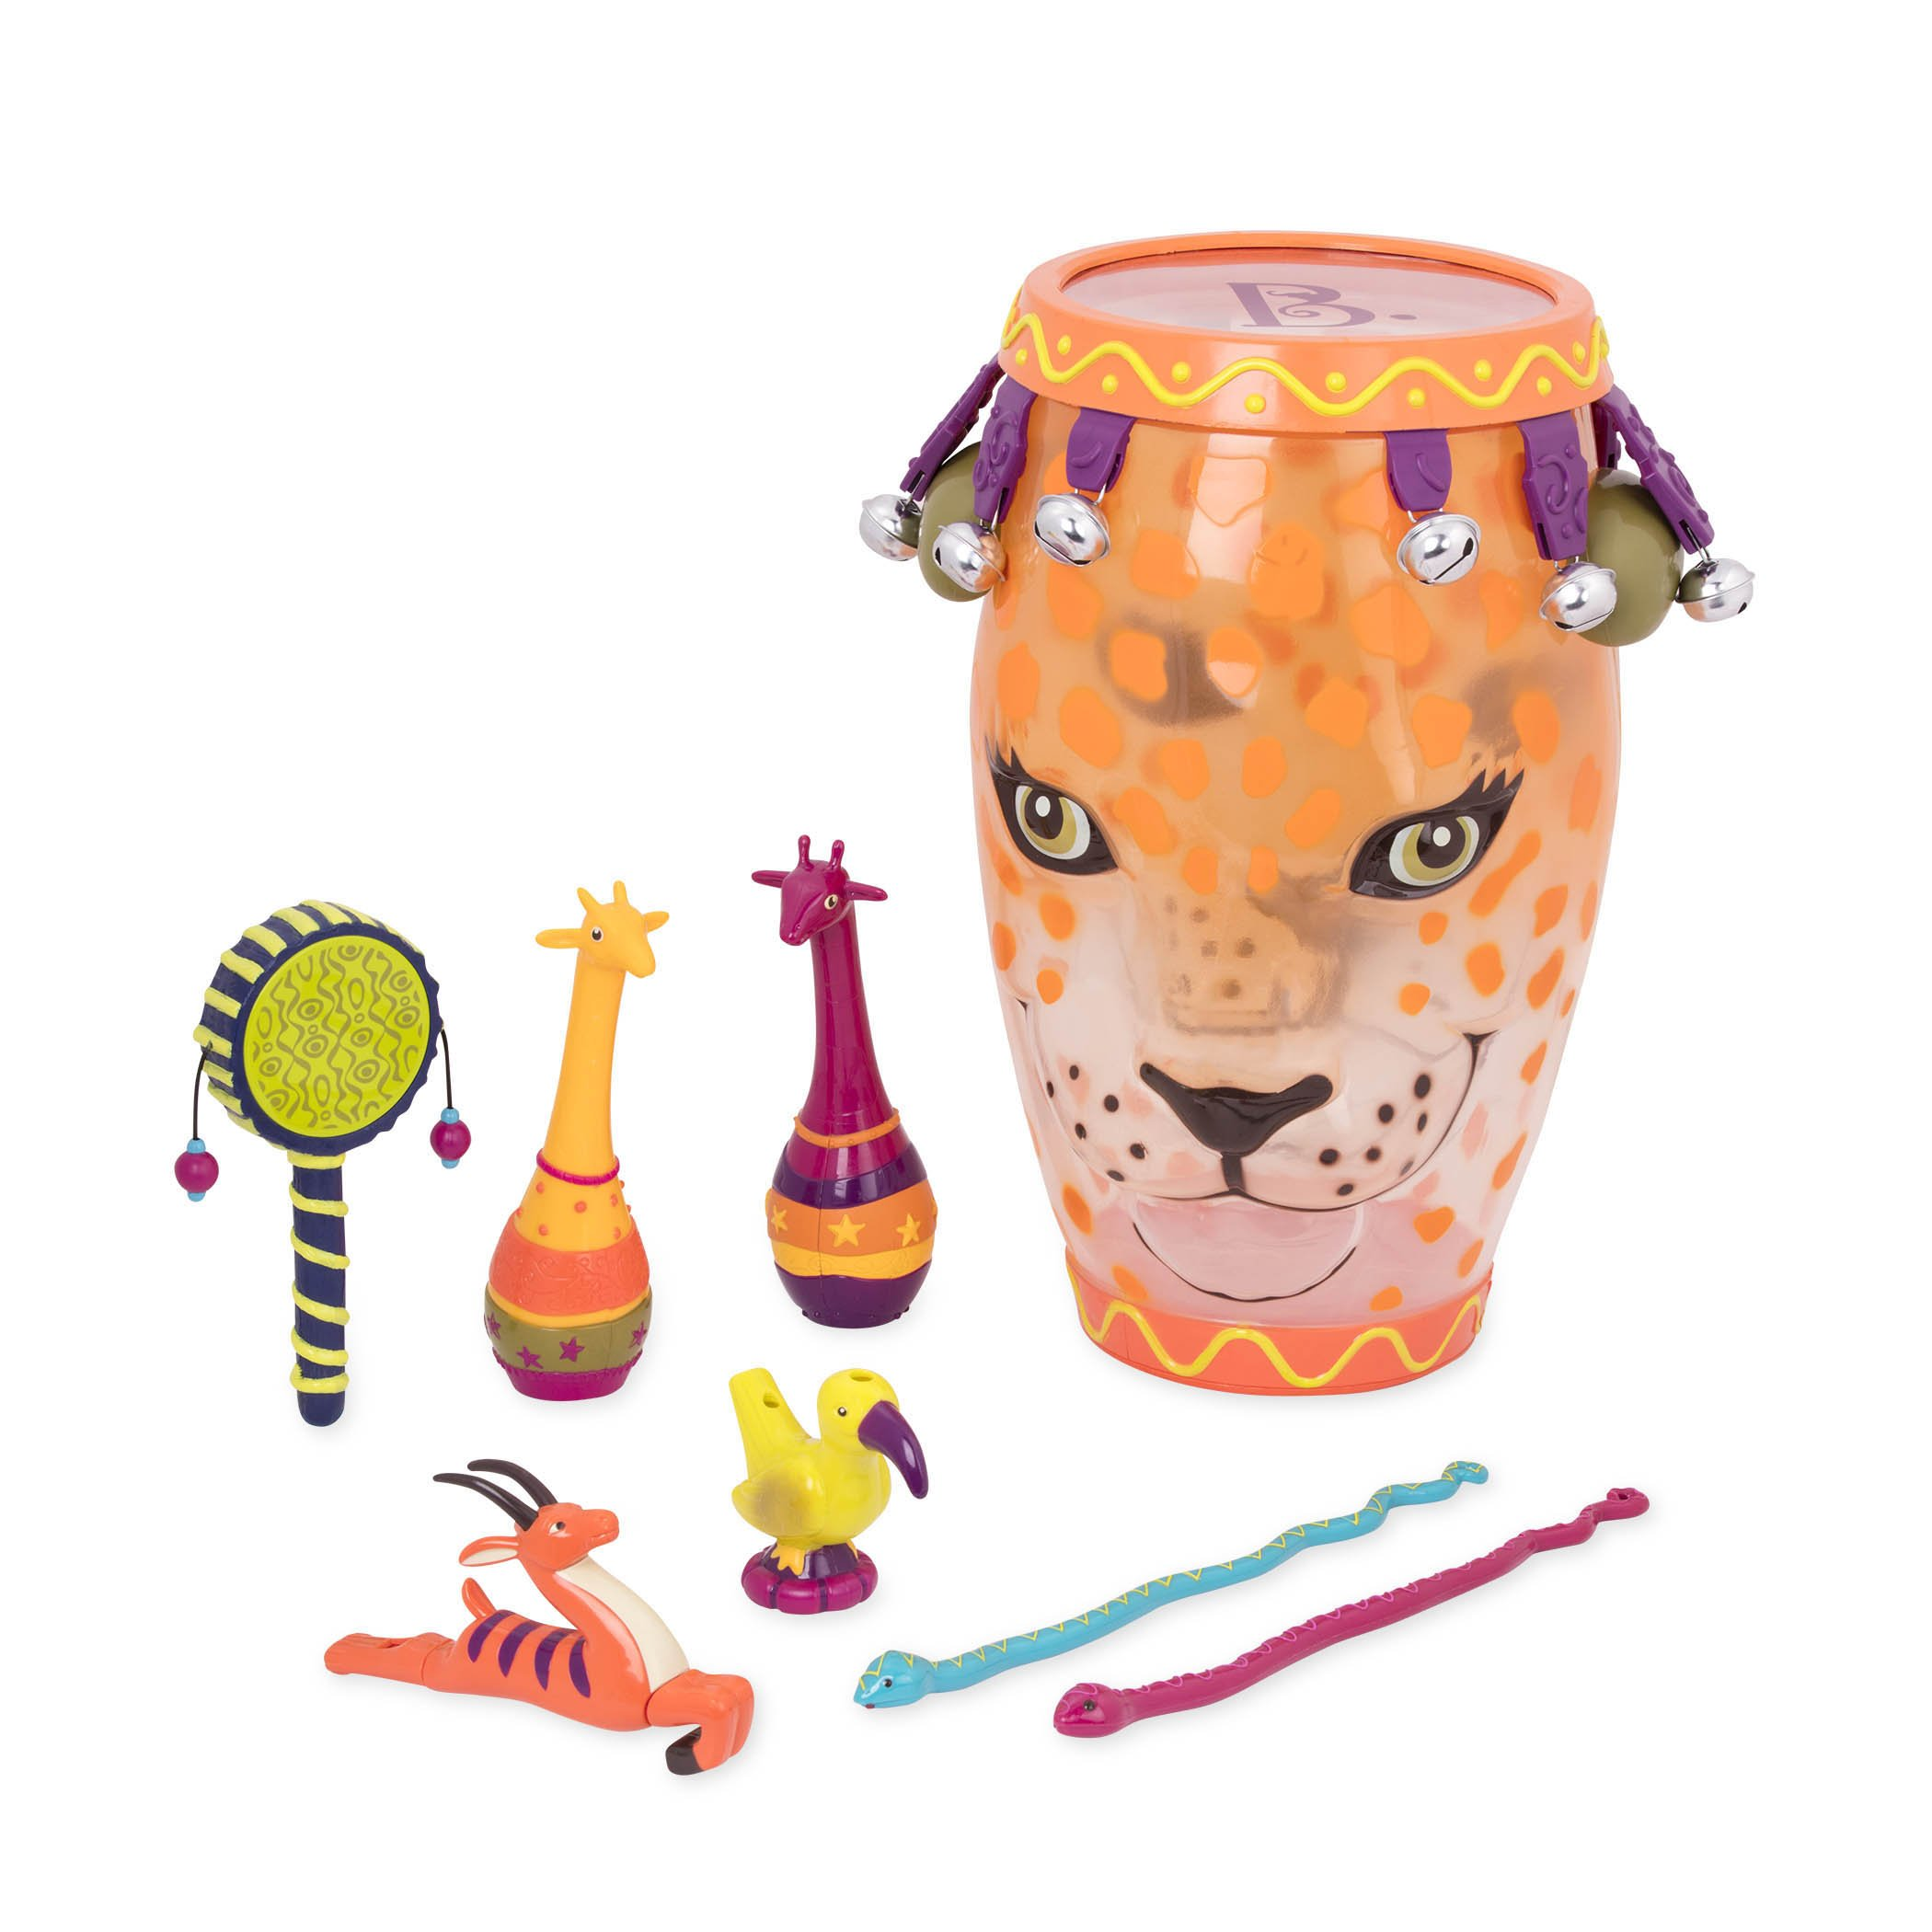 B. Toys - B. Jungle Jam - Toy Drum Set (Includes 9 Percussion Instruments for Kids)